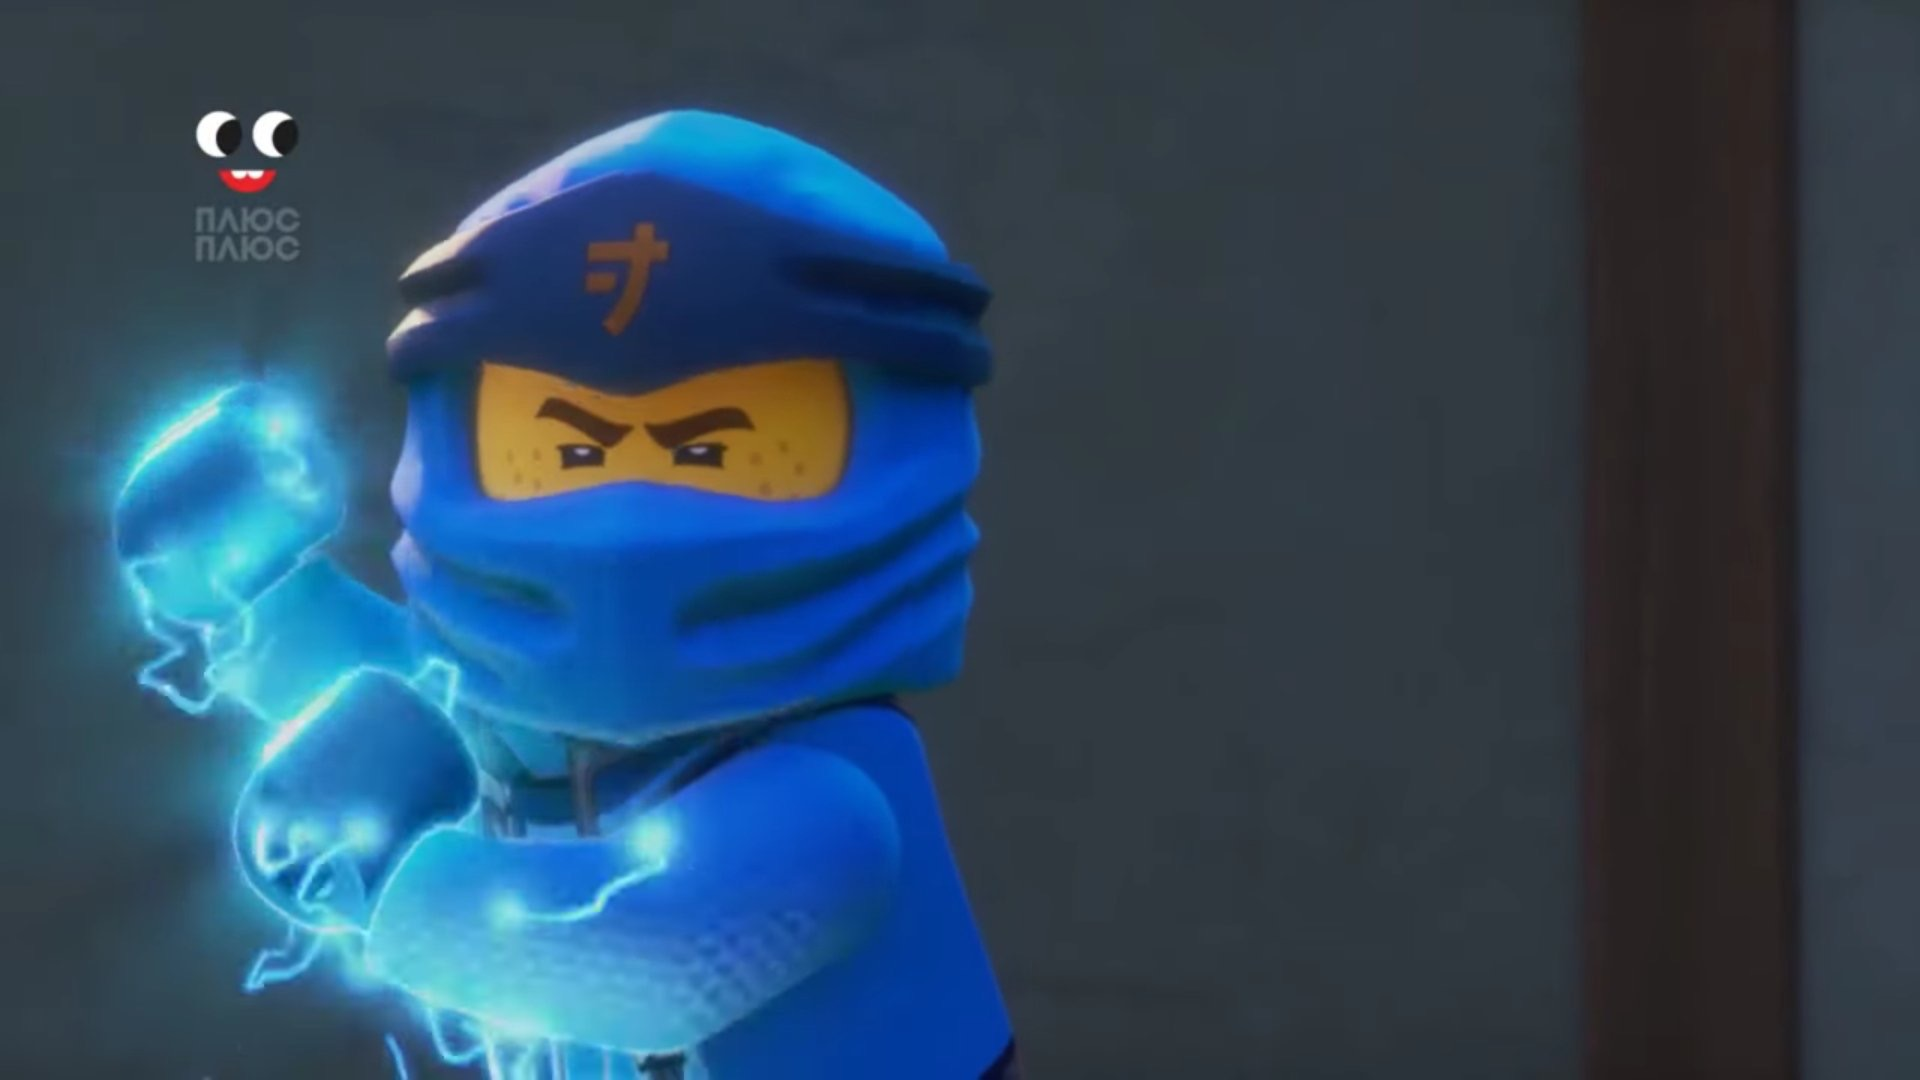 Lightning Ninjago Wiki FANDOM powered by Wikia 1920x1080